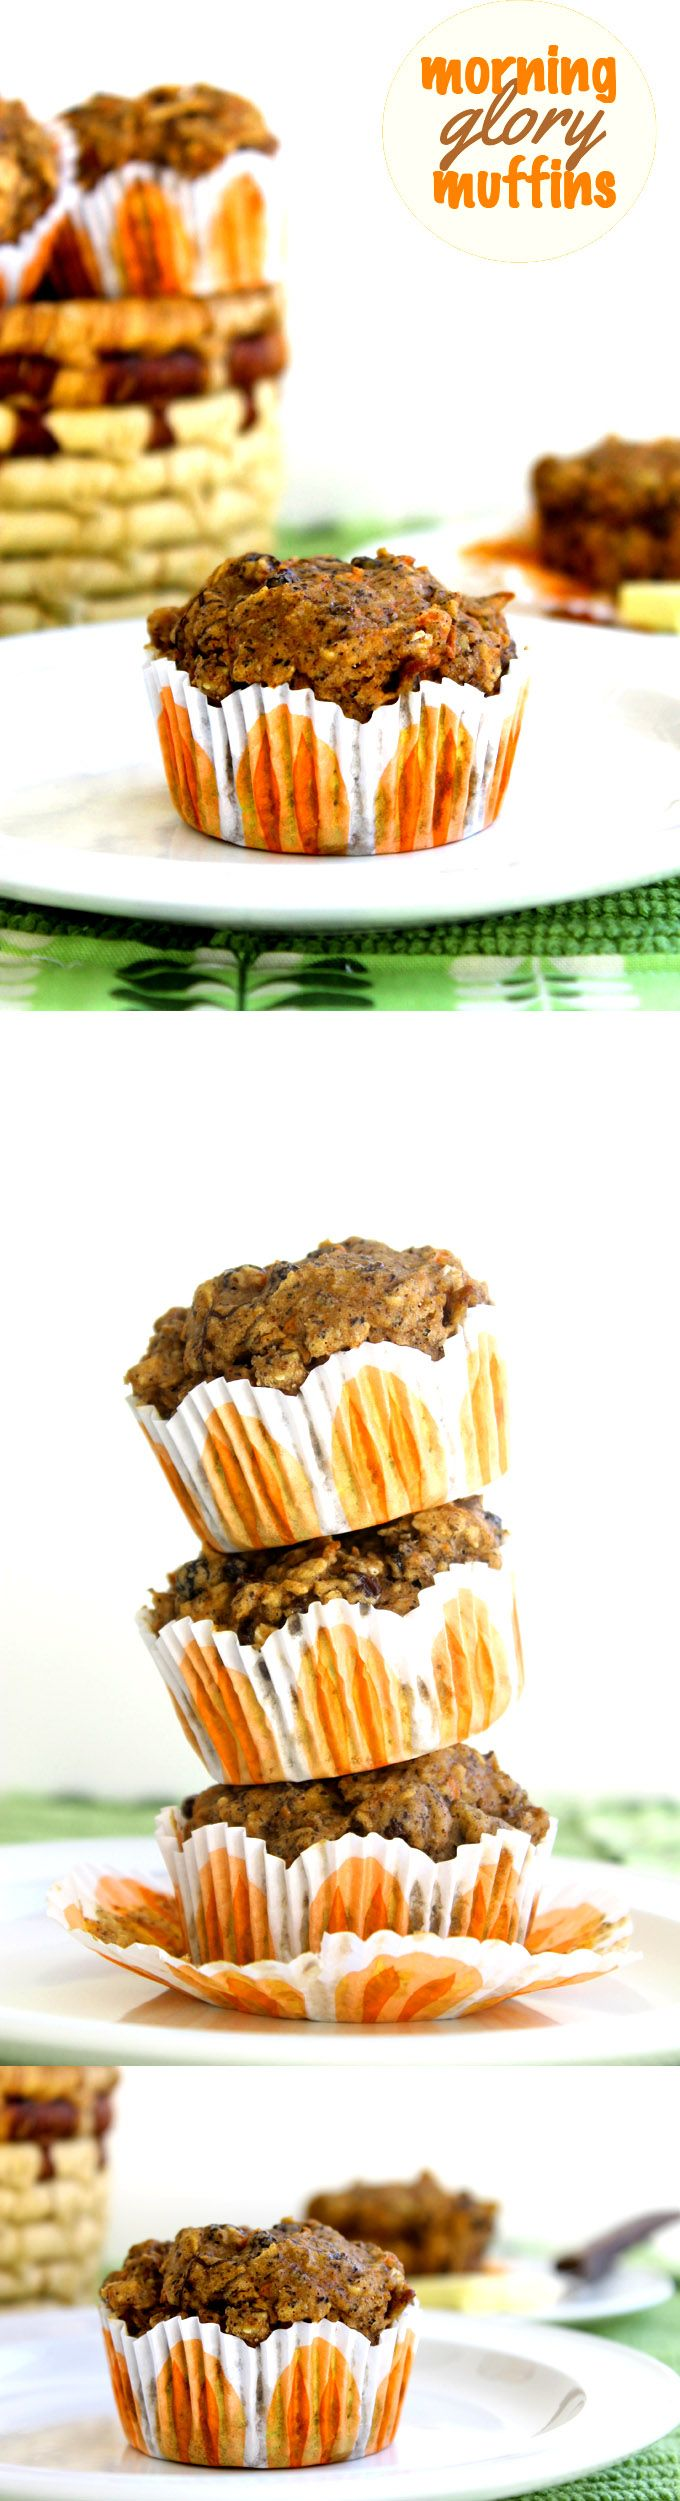 jewelry sites Gluten Free Morning Glory Muffins The Healthy Maven